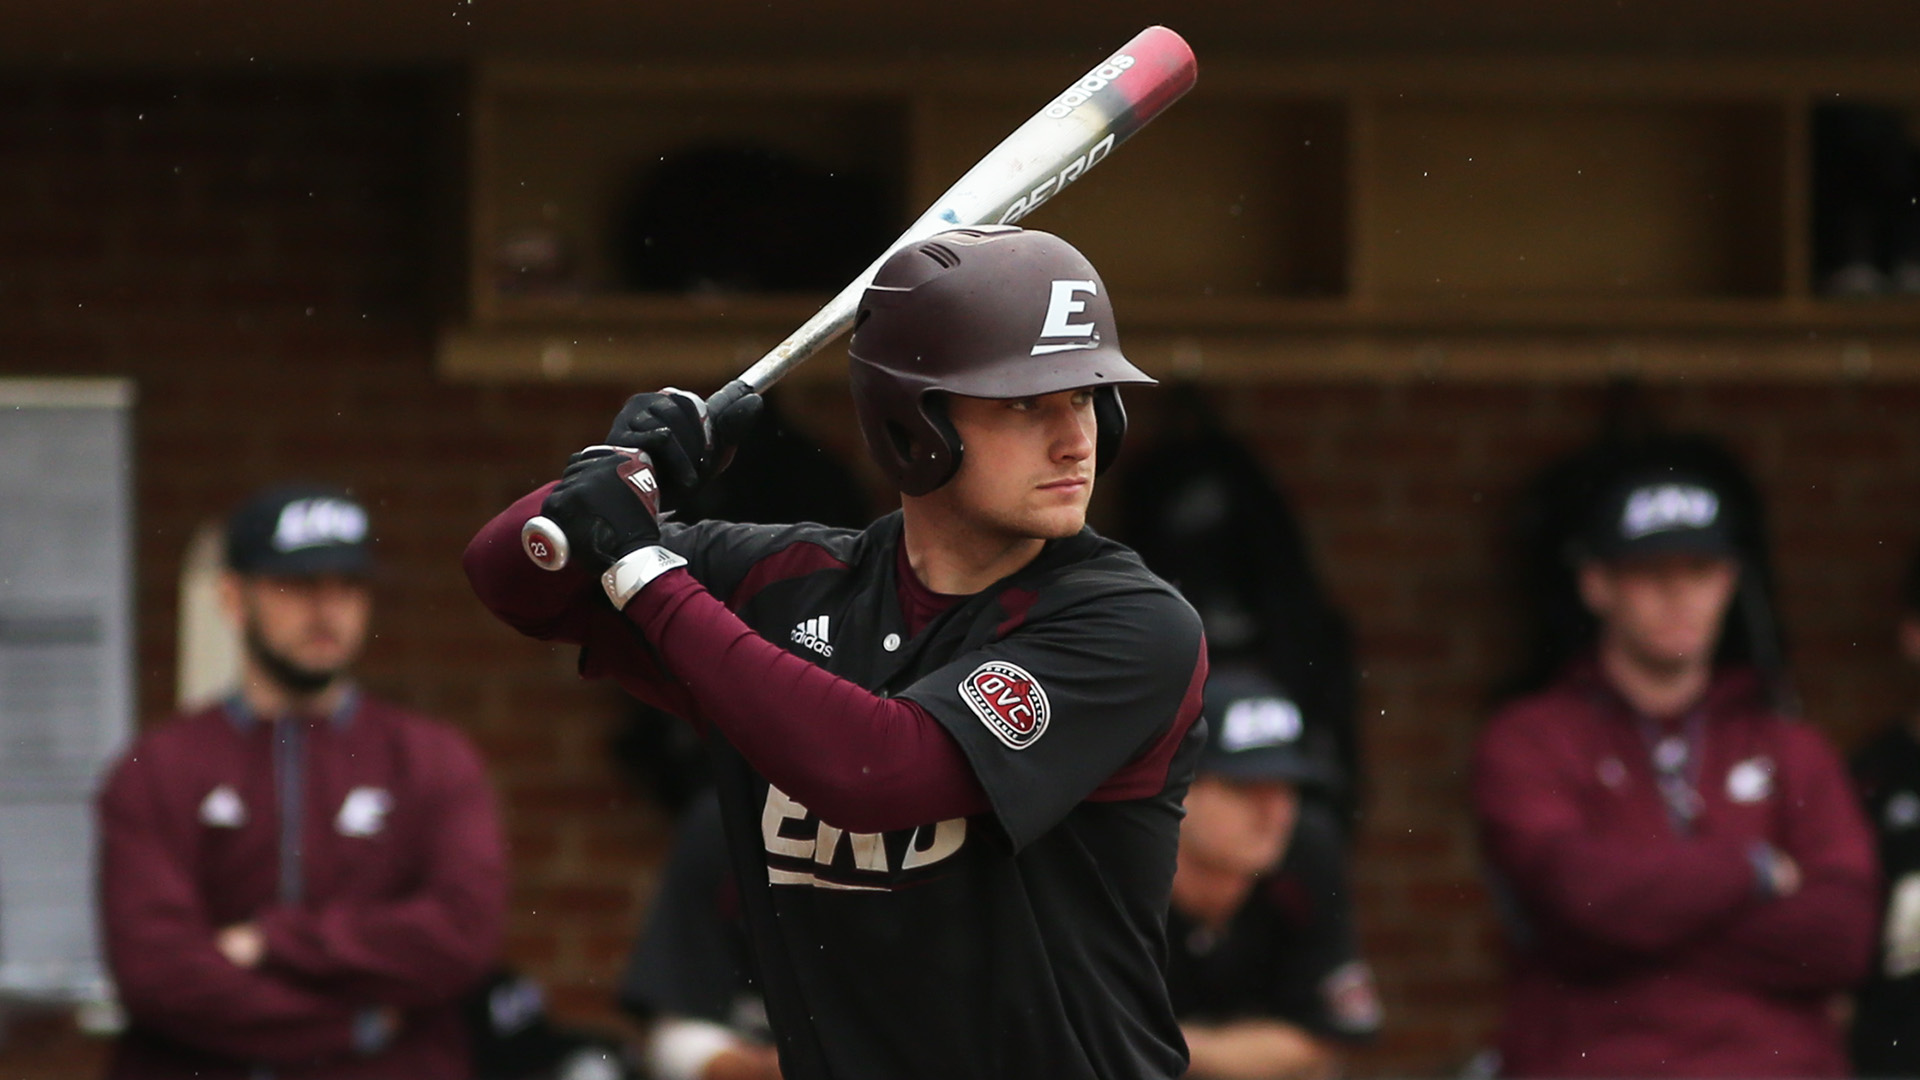 Ontario Blue Jays alum Nick Howie (Oakville, Ont.) had five hits for Eastern Kentucky in the past week. Photo: Eastern Kentucky University Athletics